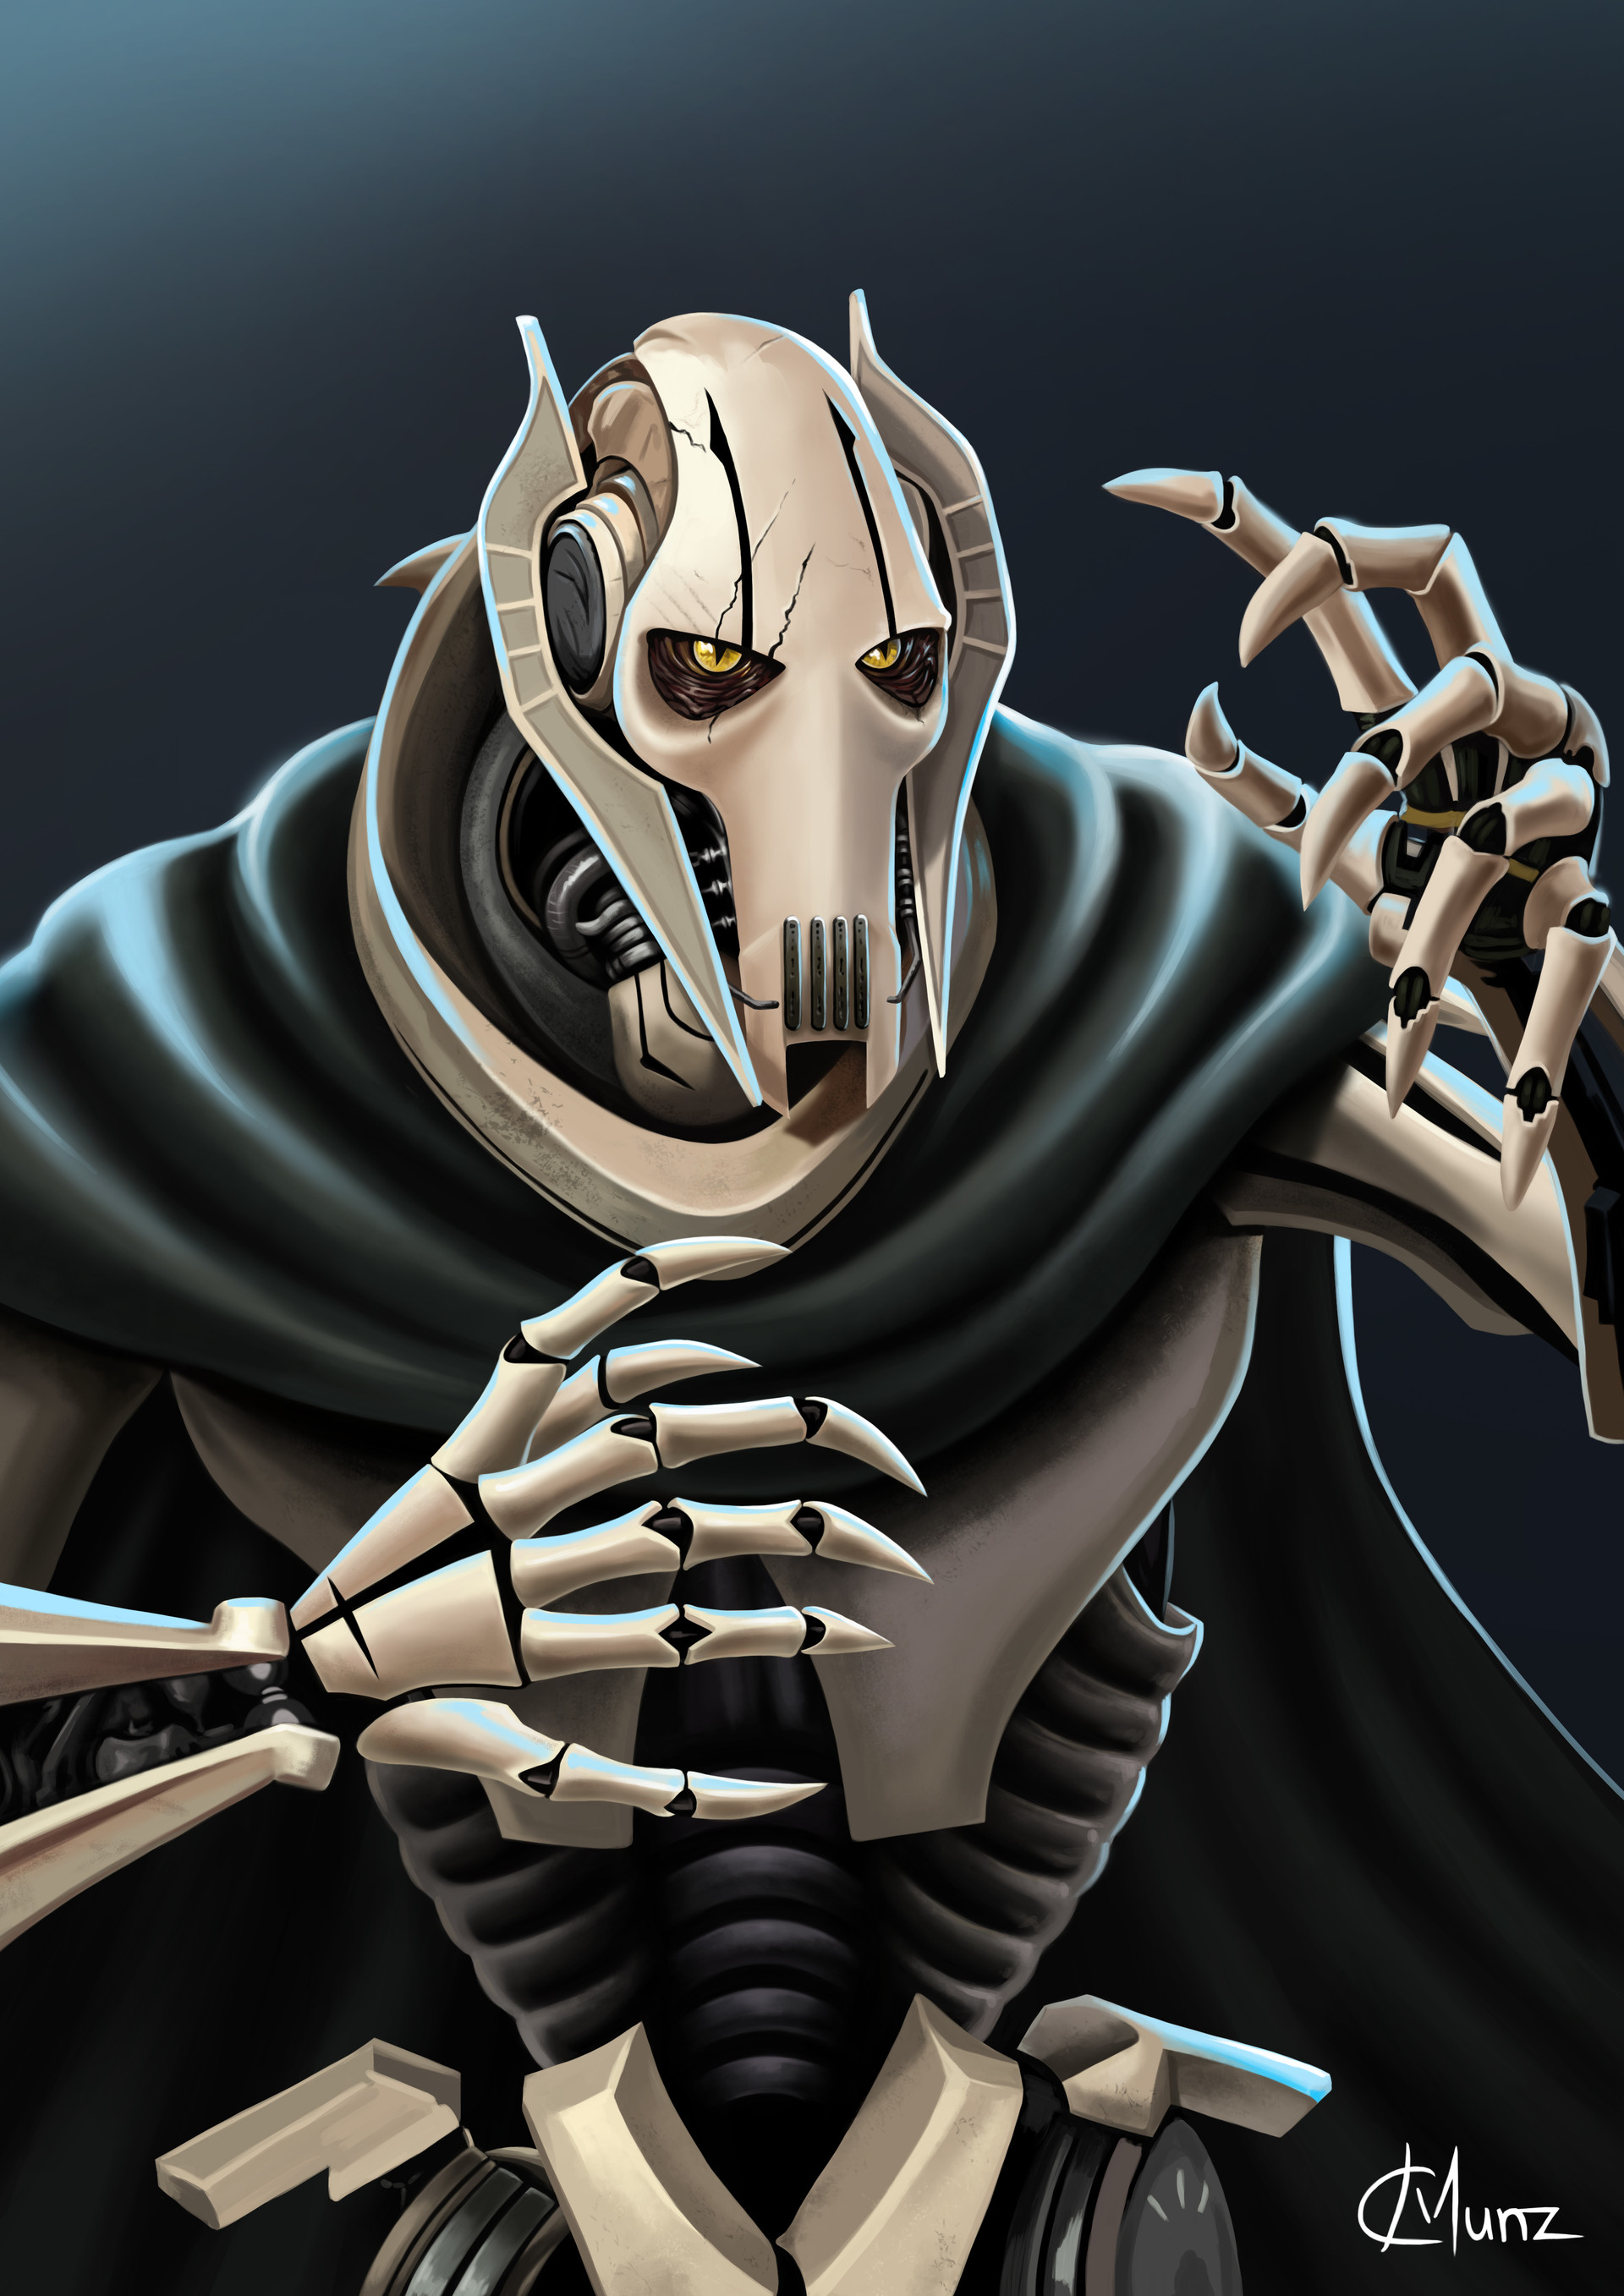 Uncategorized Pictures Of General Grievous artstation general grievous star wars christine munz grievous